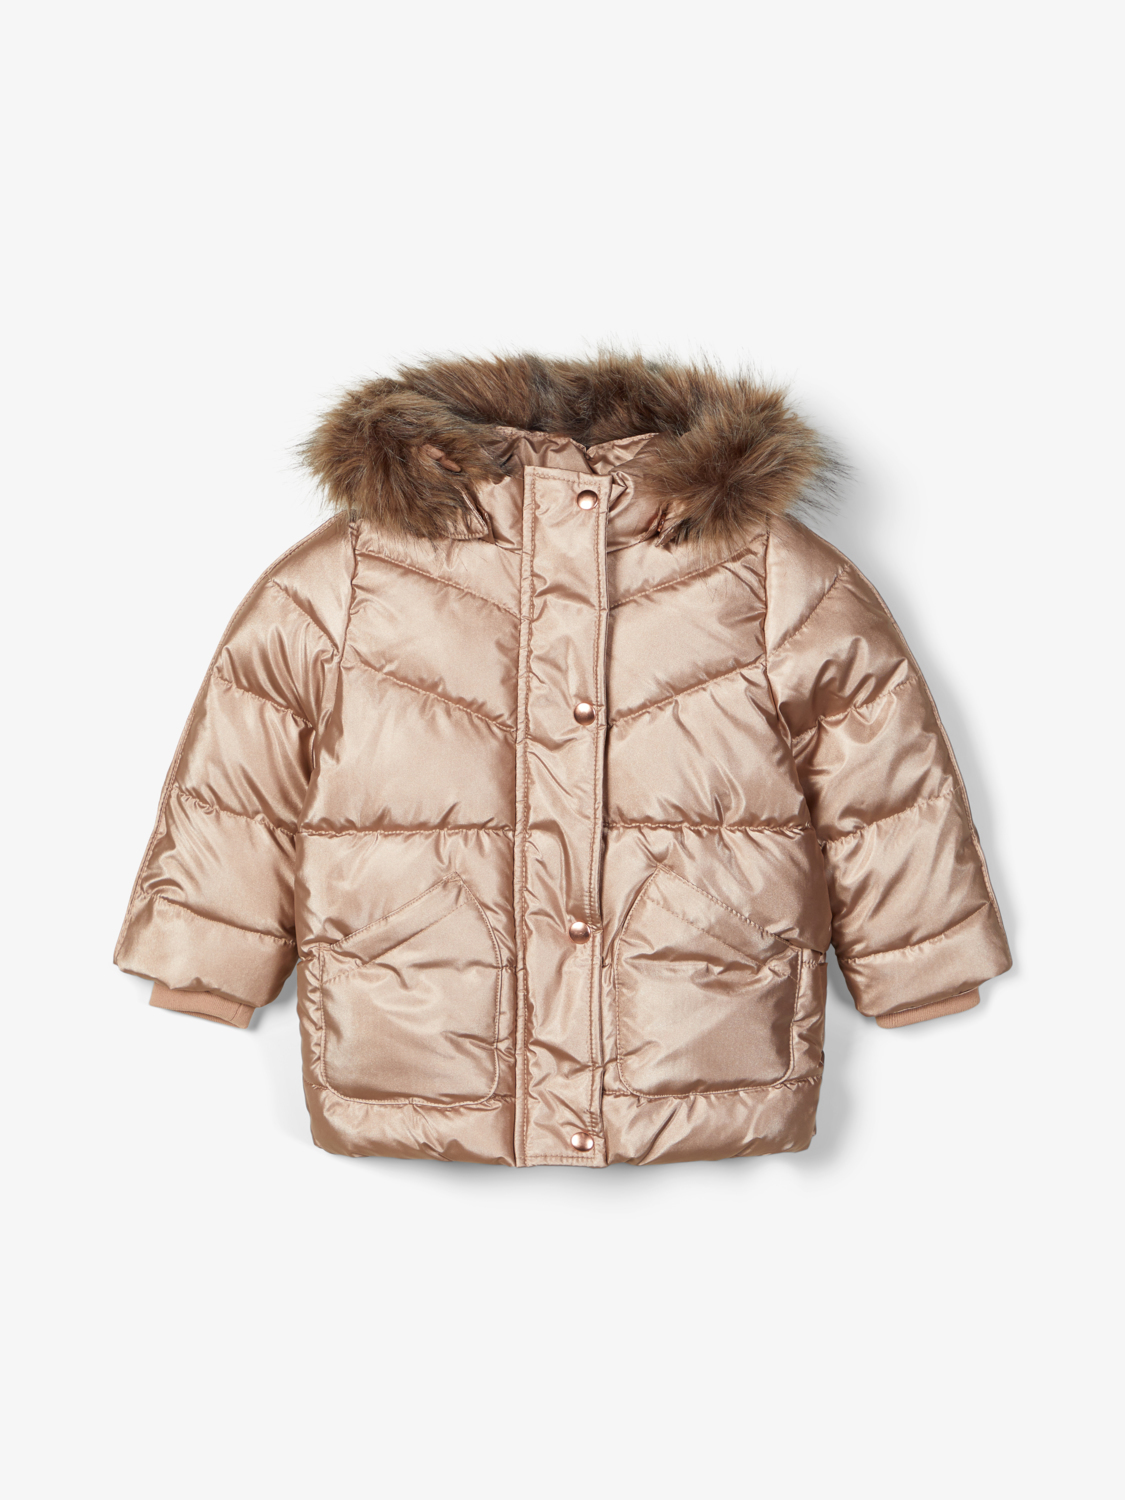 NAME-IT_AutumnWinter2020_3357754_13178668_12.jpg